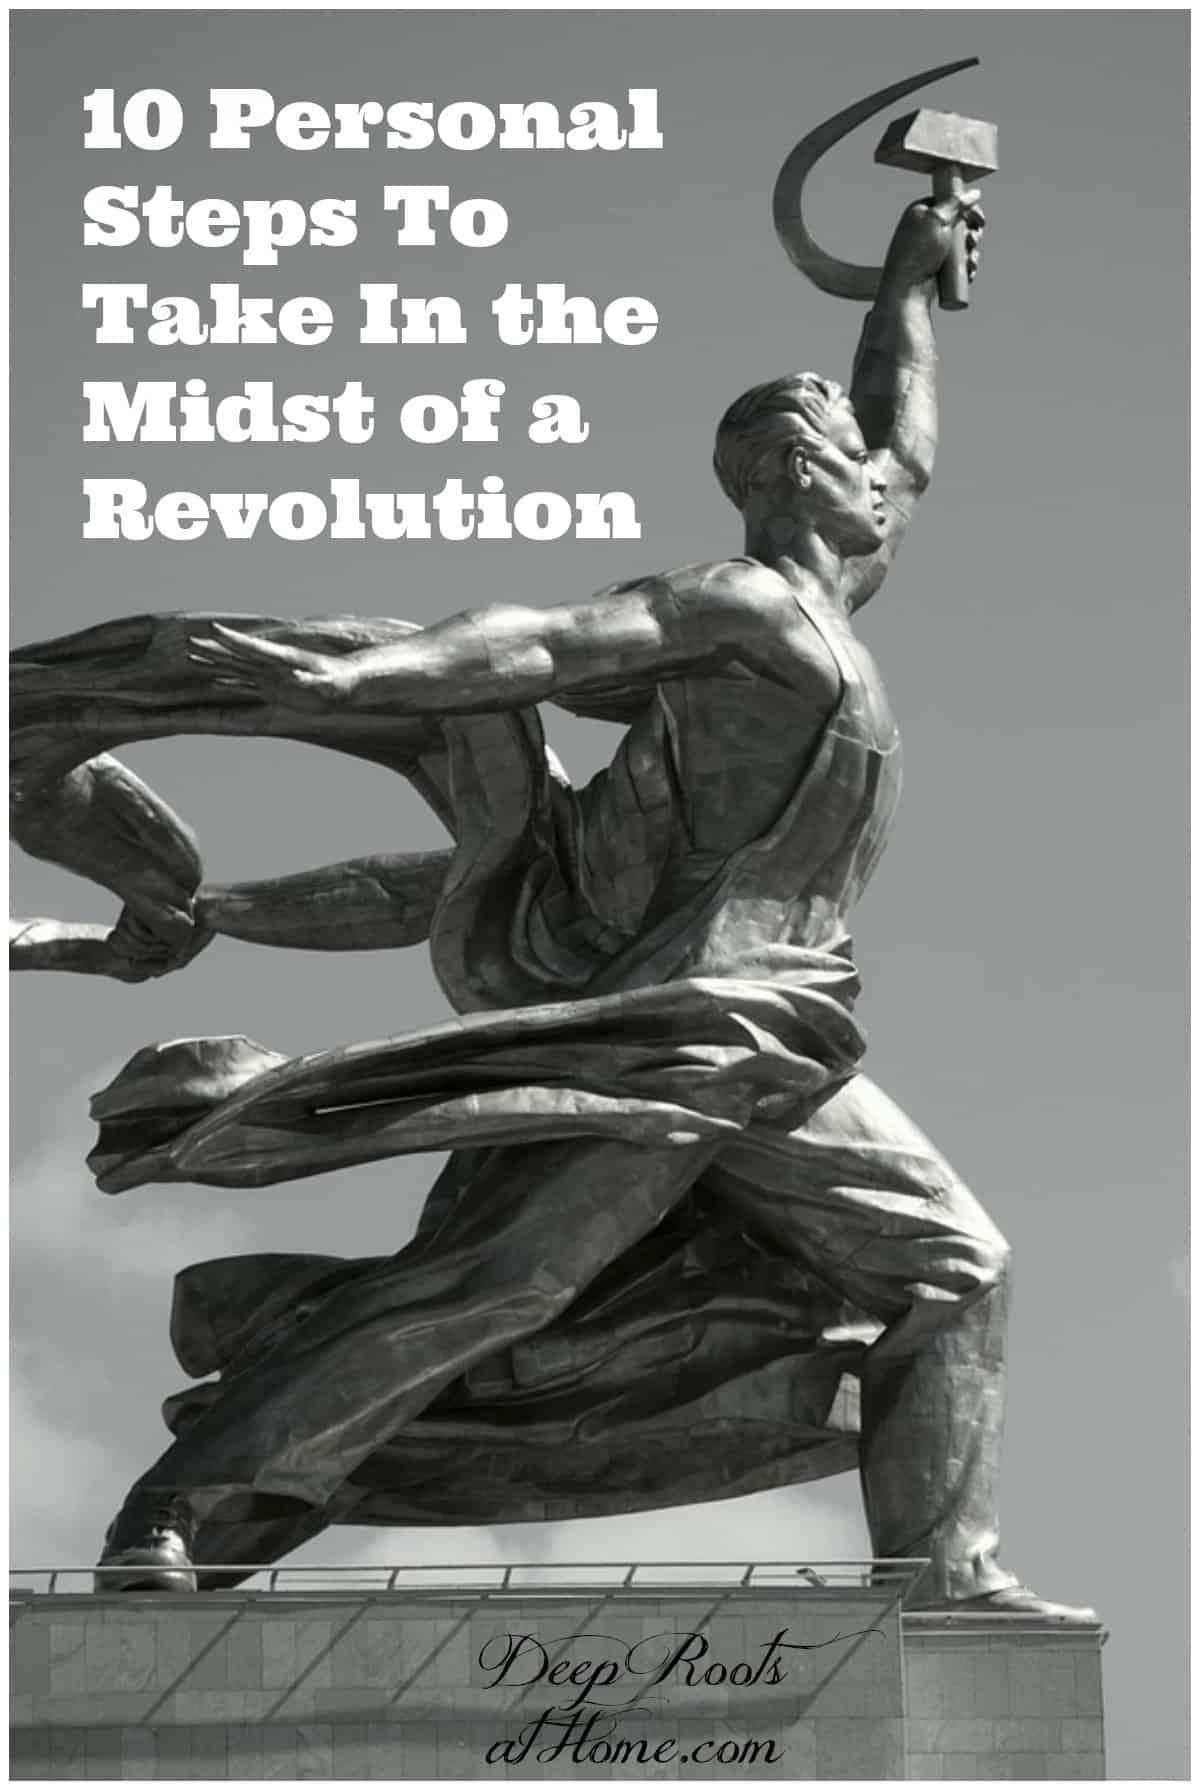 10 Personal Steps To Take In the Midst of a Revolution. statue